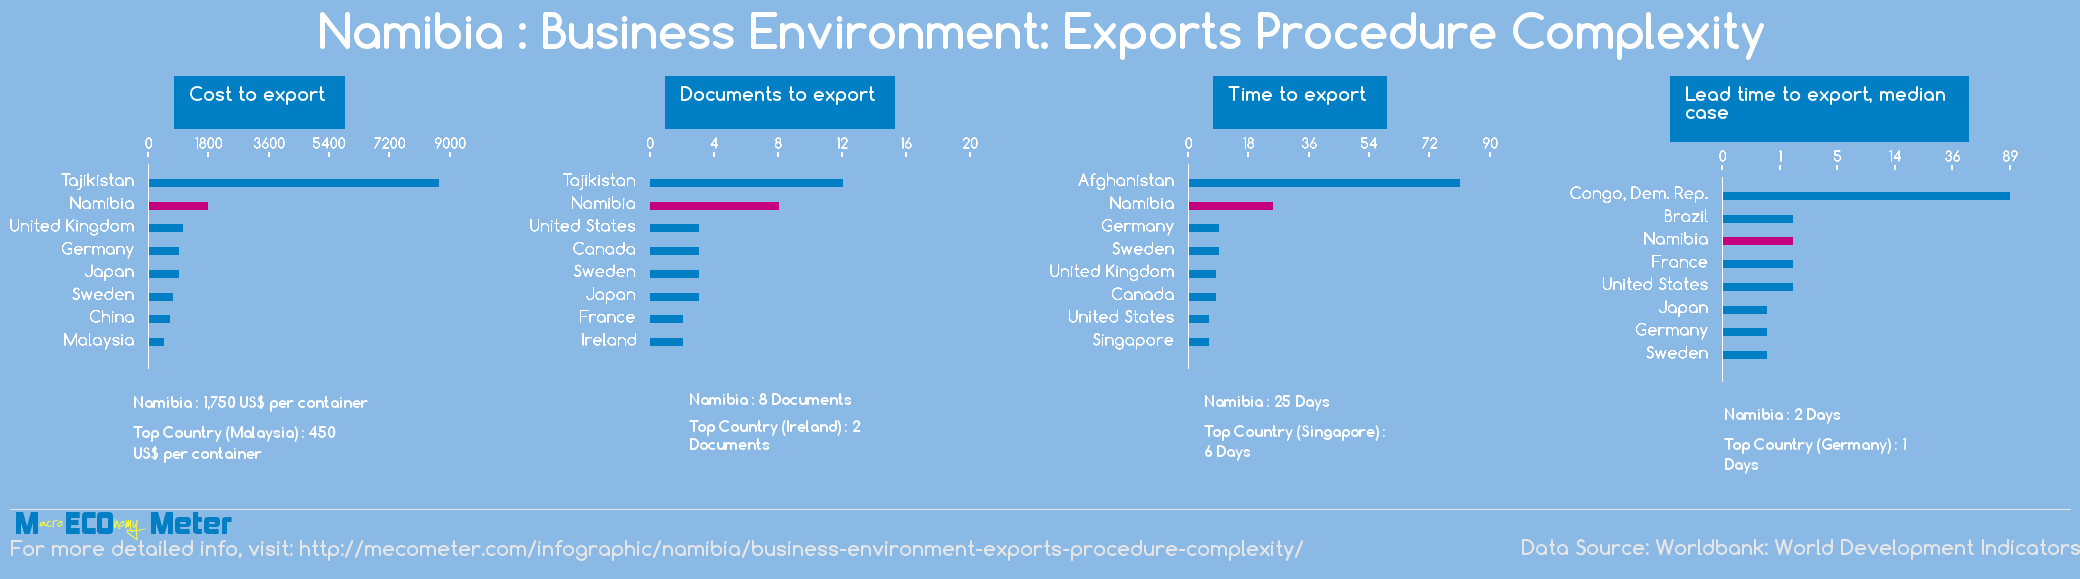 Namibia : Business Environment: Exports Procedure Complexity